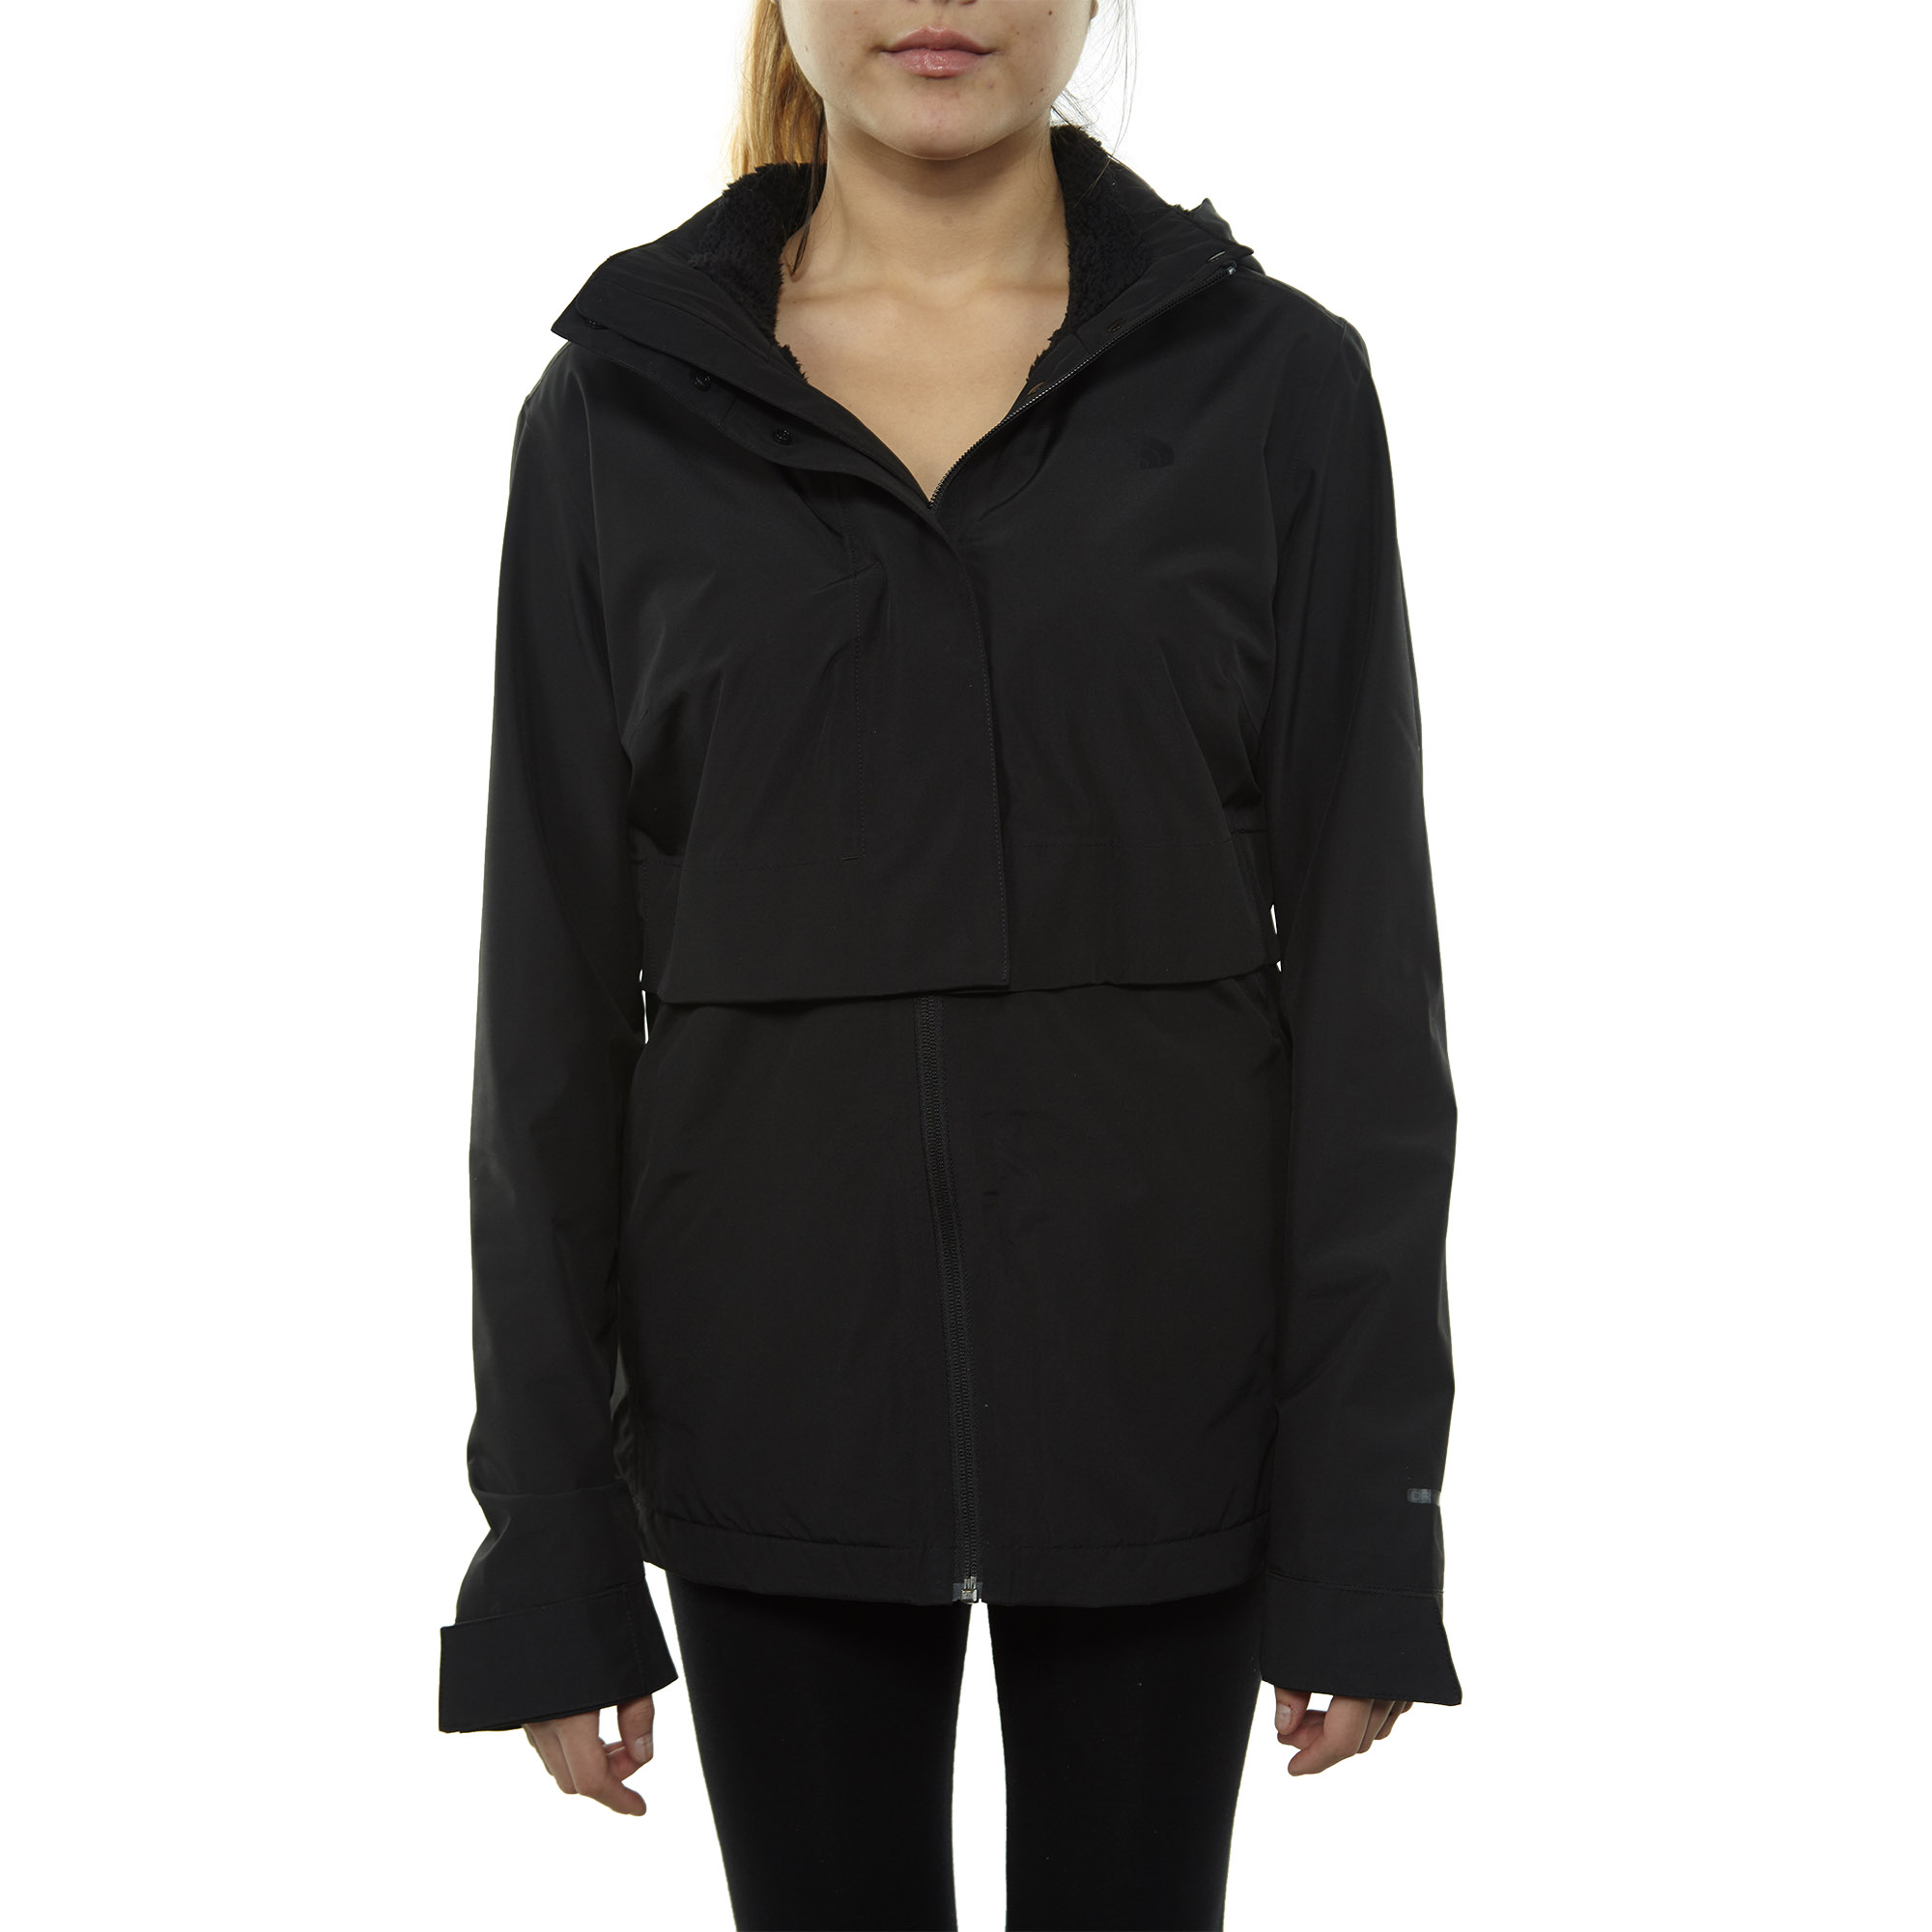 cae7a5dcf789 Details about The North Face Womens Morialta Jacket A2VHJ-JK3